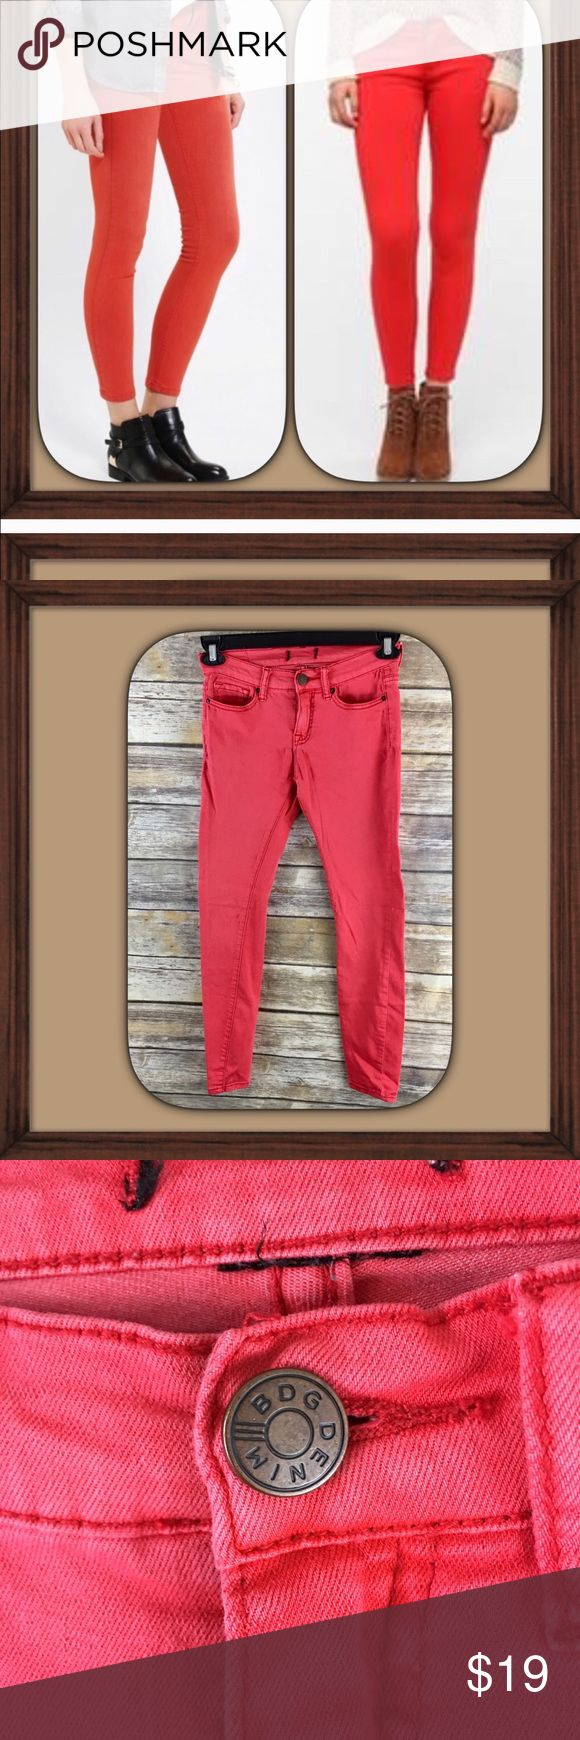 BDG Red/Orange Skinny Jeans GUC Red/Orange skinny jeans. Does not have size tag Please read measurements. Approximately 26 inch waist ( seen in last picture) 8 inch rise. 29 inch inseam. BDG Jeans Skinny